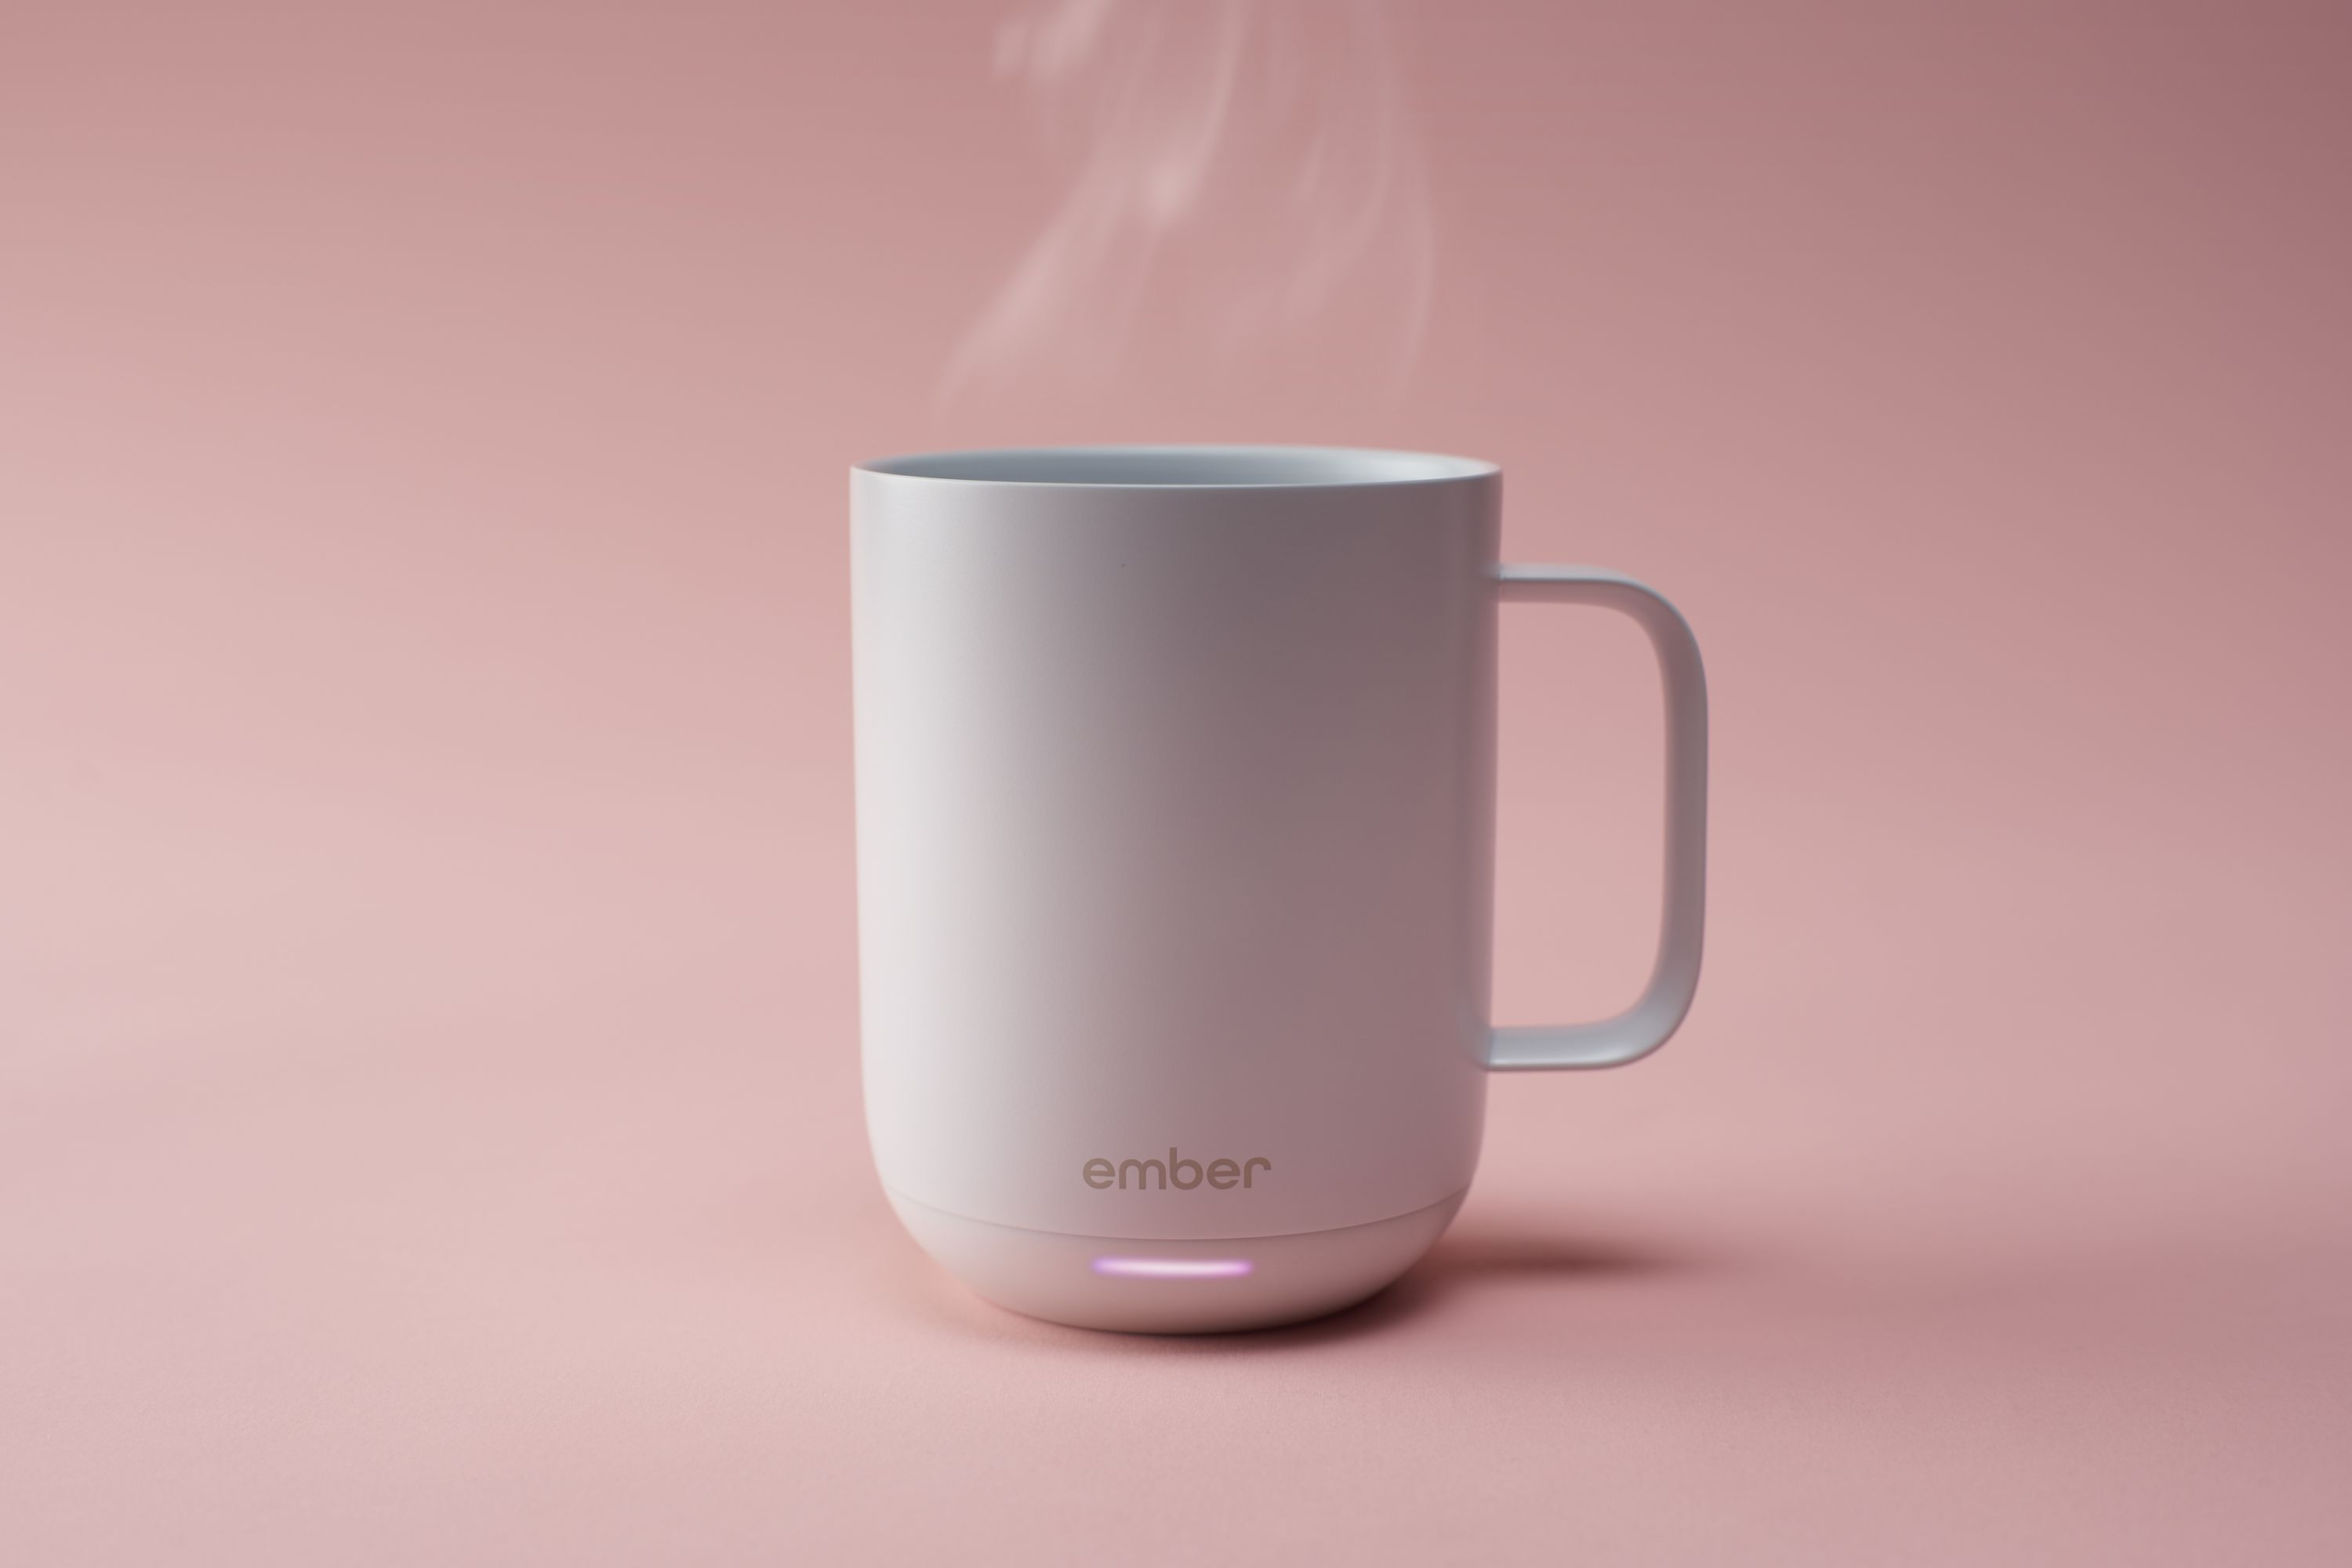 The Ember Heated Mug Keeps Your Coffee At The Right Temperature Ember Smart Mug First Look Review